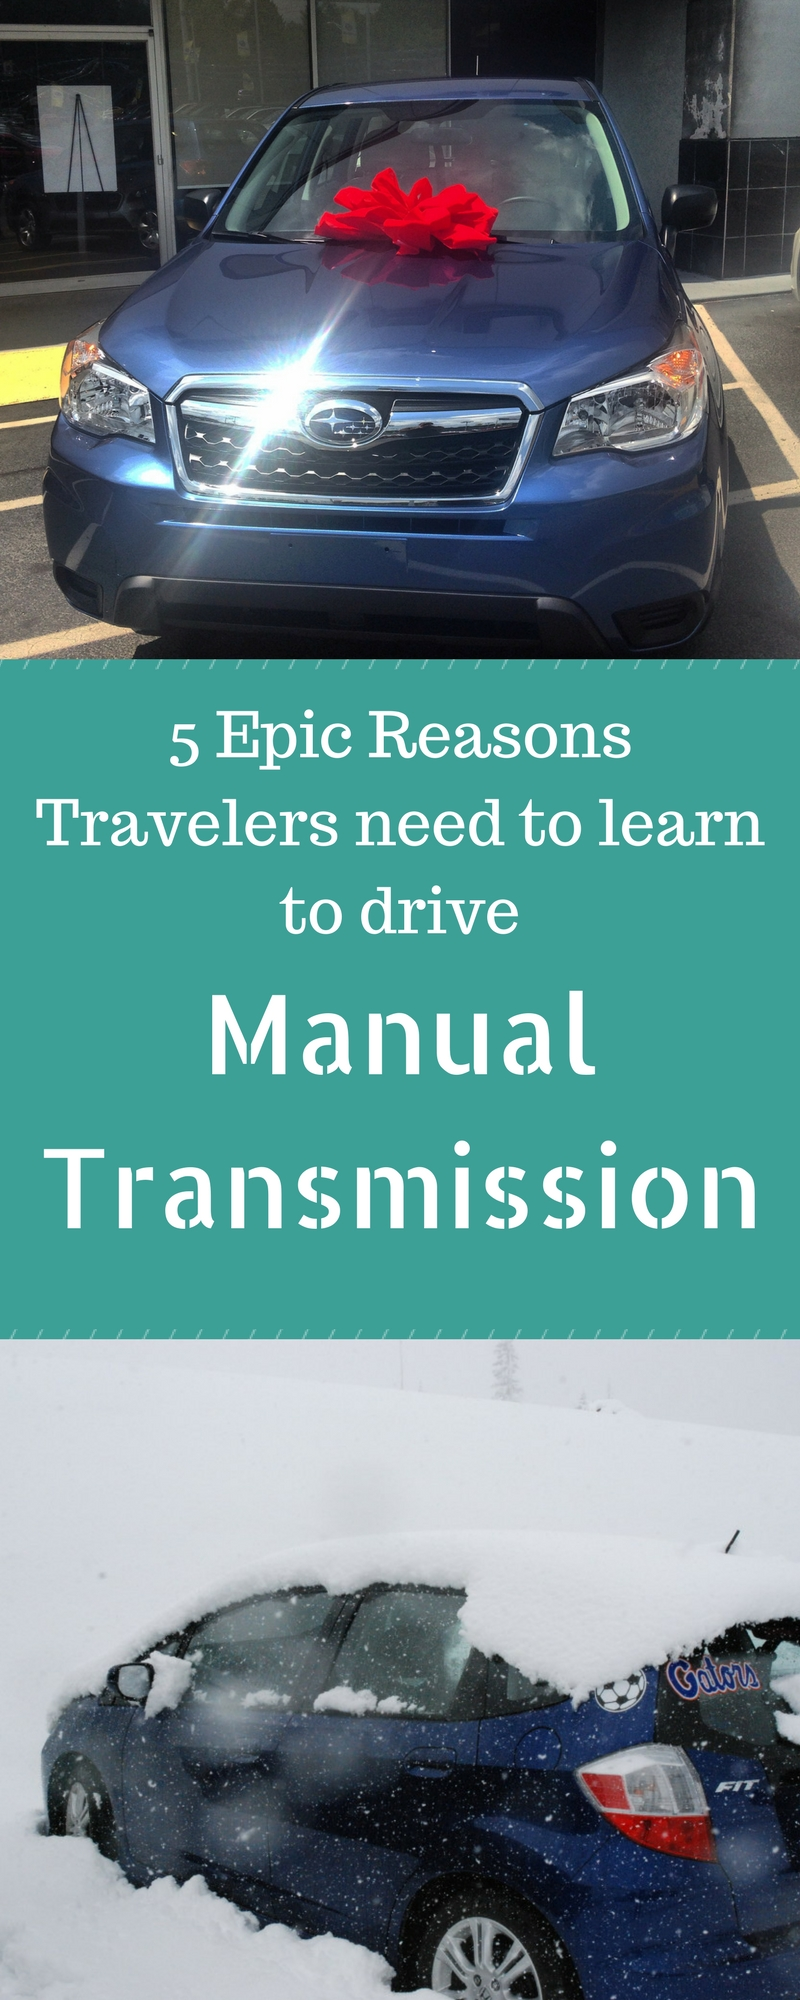 how long does it take to learn to drive manual transmission?